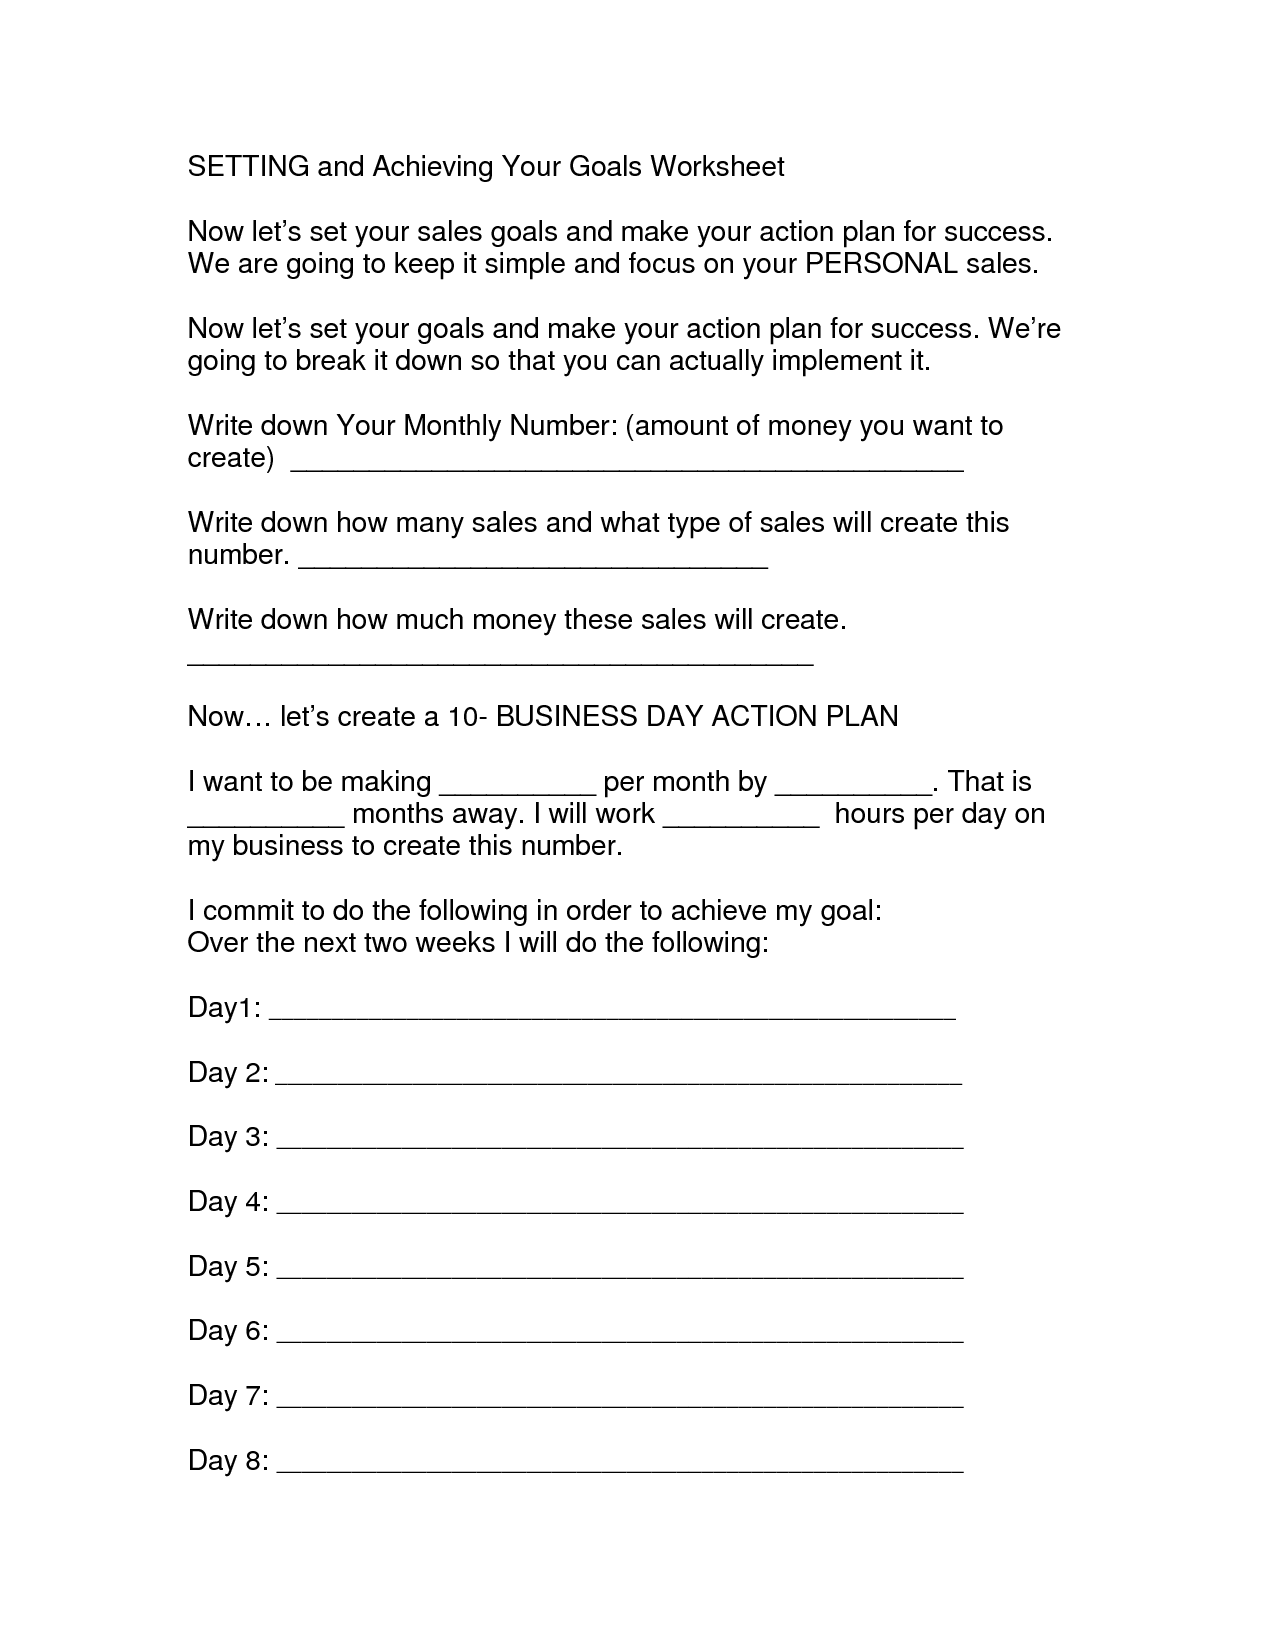 15 Best Images Of Weight Loss Goal Worksheet